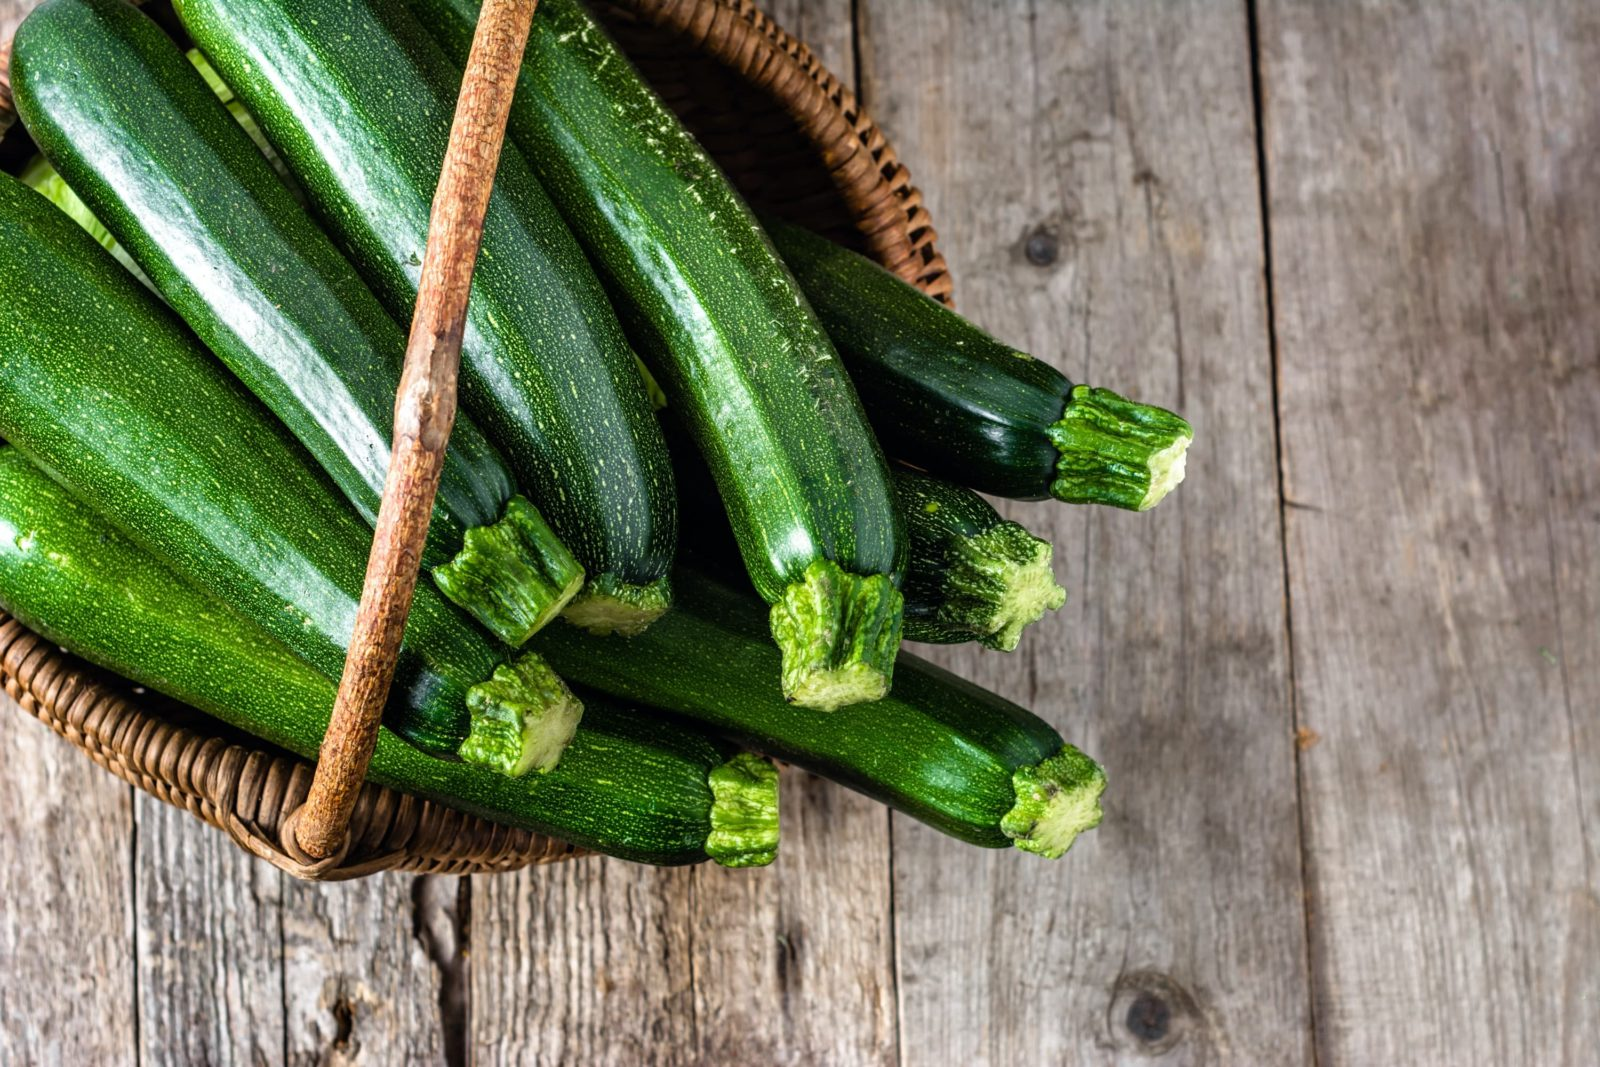 courgettes in a basket on a timber surface